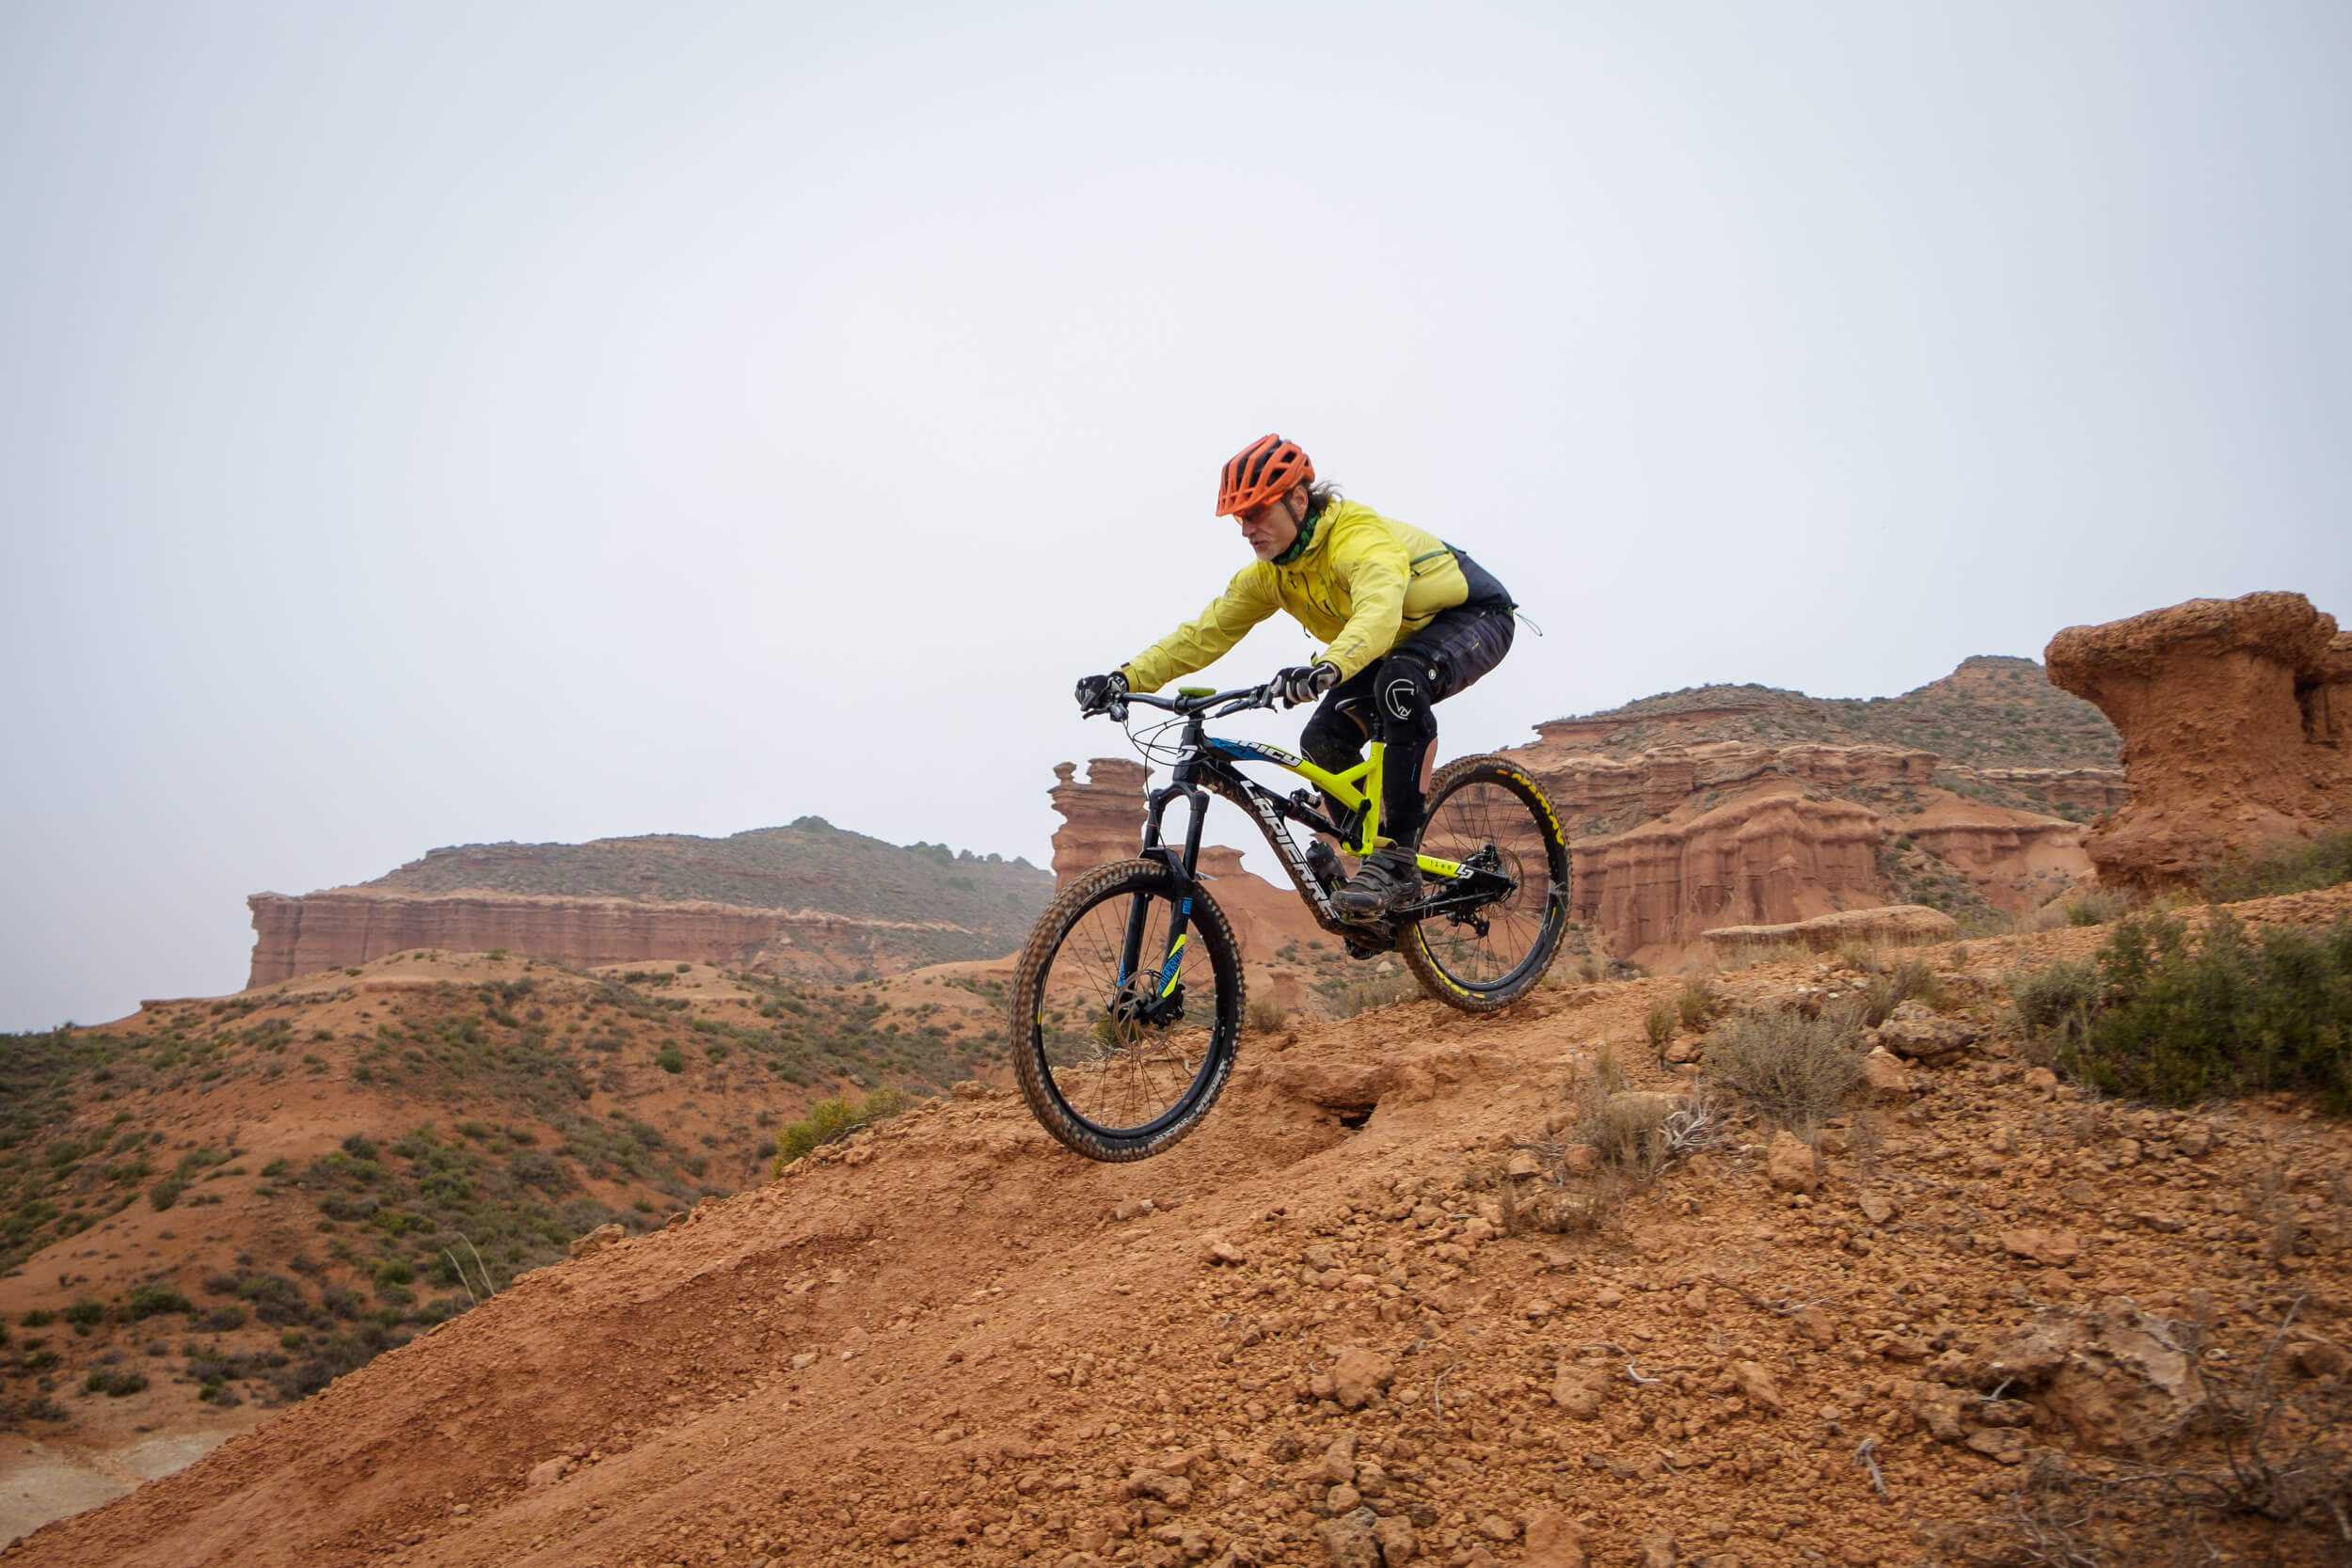 Mountain_biking_spanish_utah06